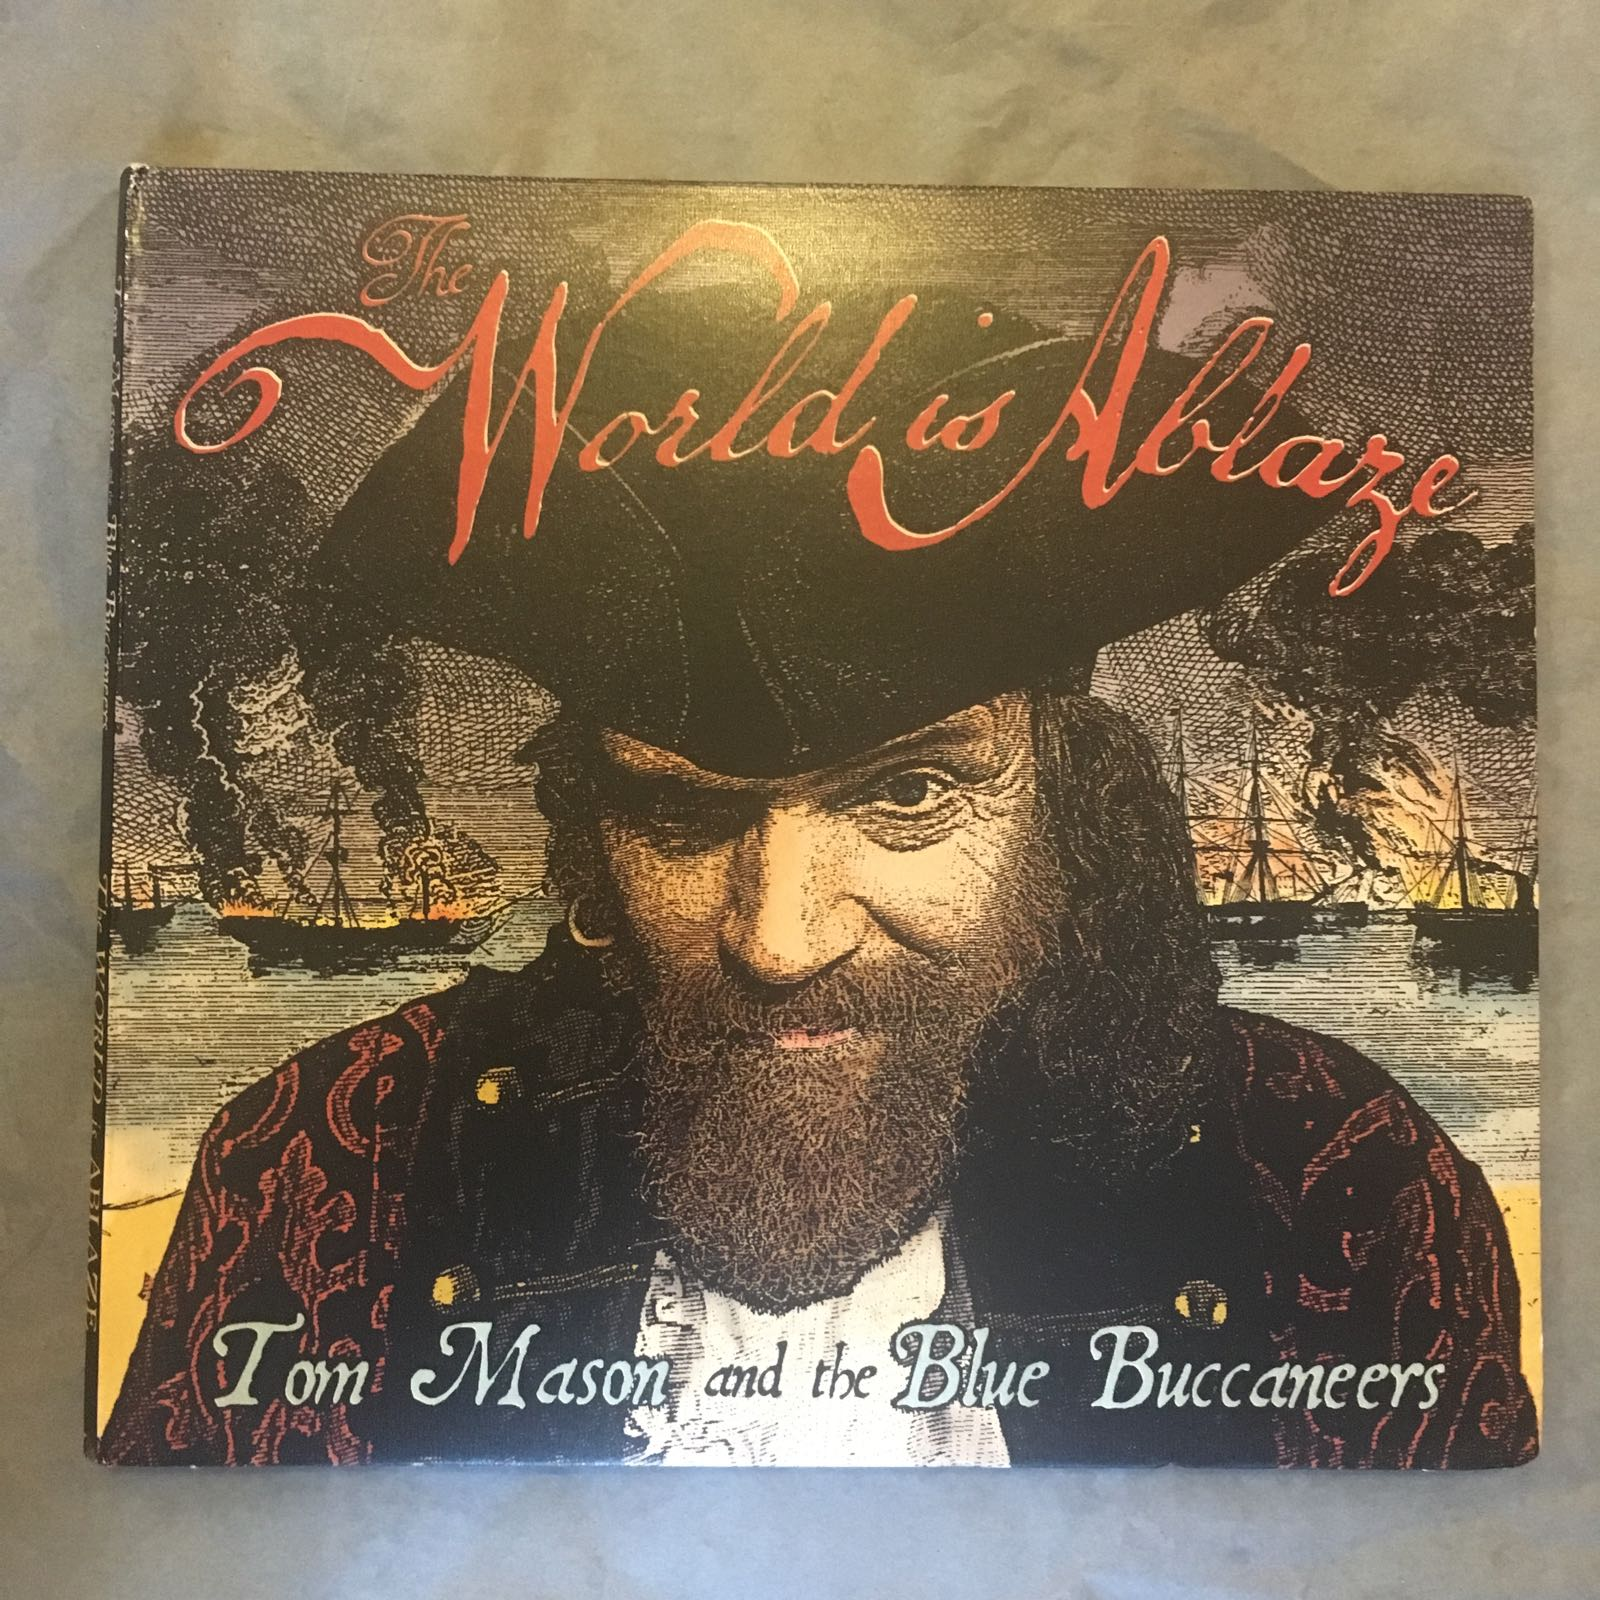 CD - Tom Mason & The Blue Buccaneers, The World is Ablaze